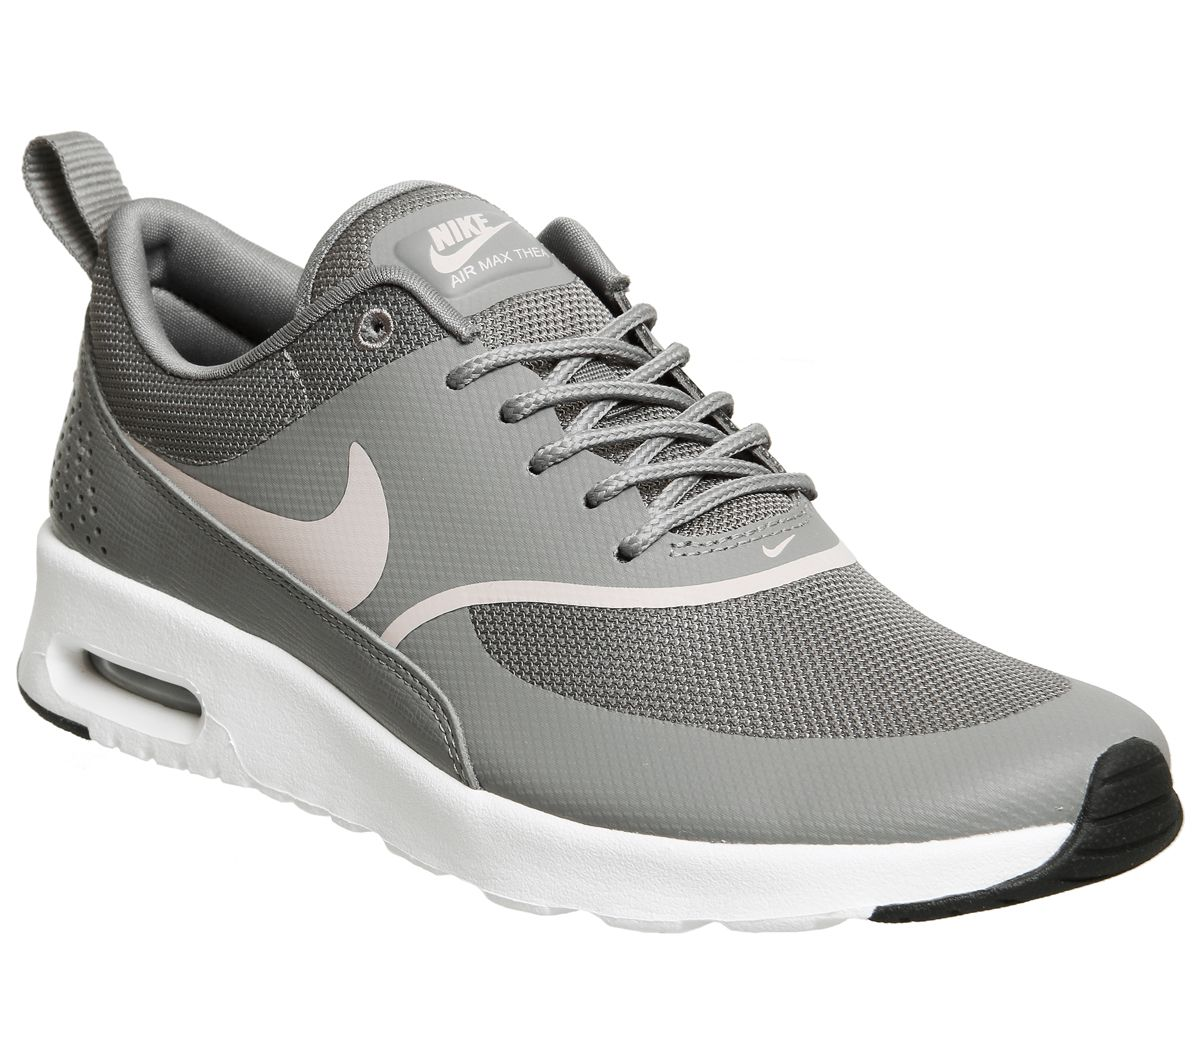 half off b4a39 69100 Nike Air Max Thea Trainers Gunsmoke Particle - Hers trainers